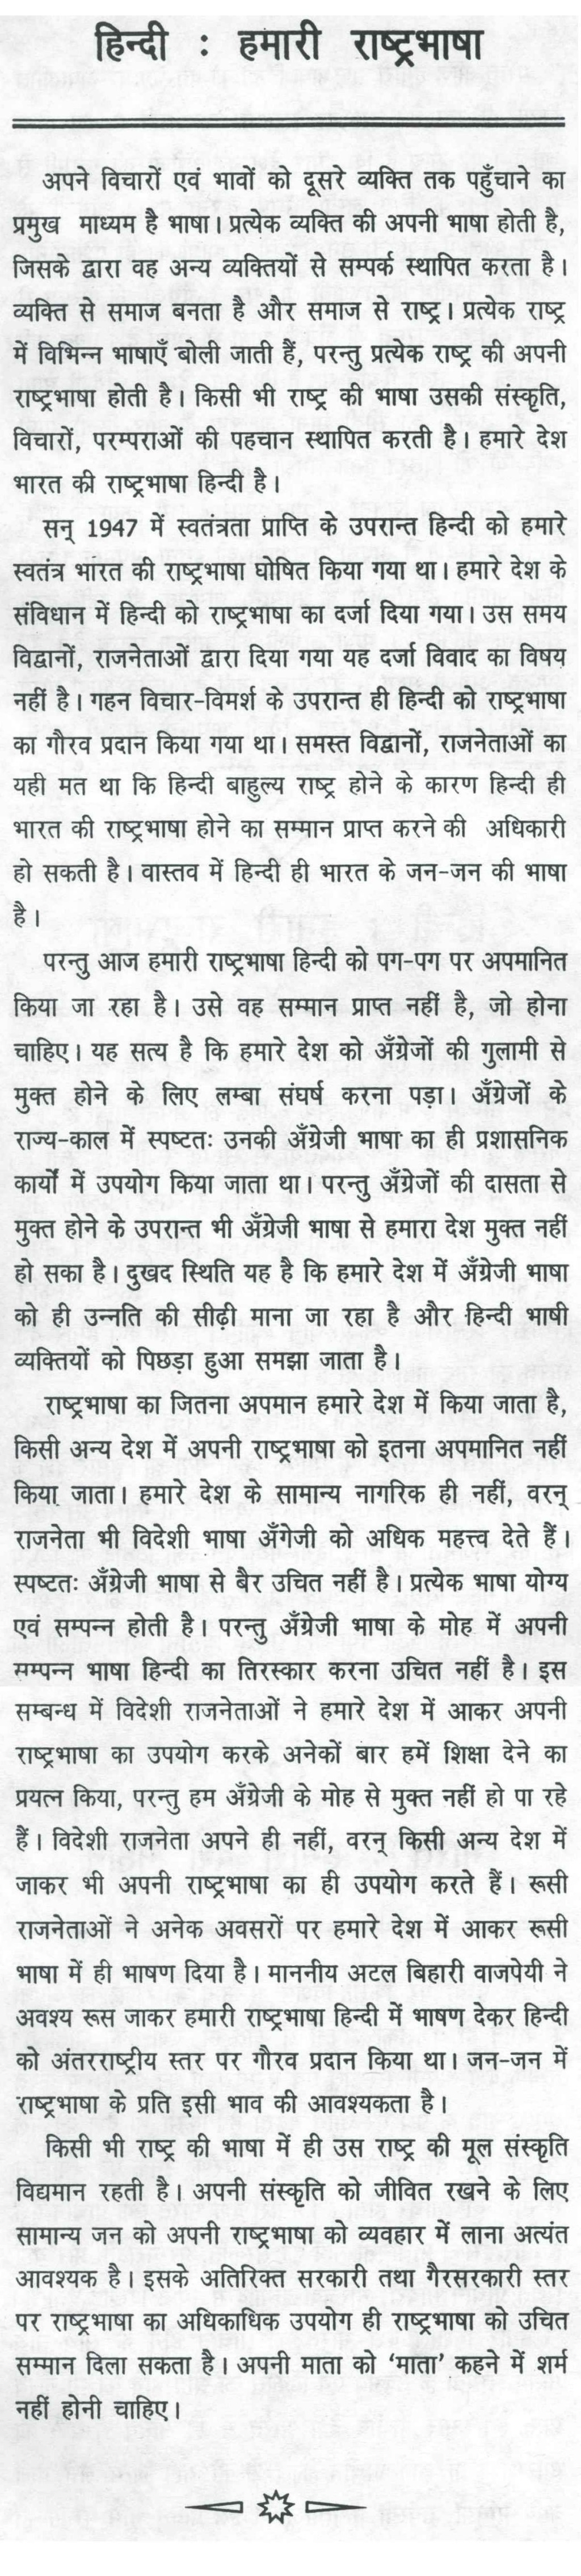 013 Essay On Unity In Hindi Example Ideas Of Our National Language Fancy Book For Class Fascinating Importance Diversity Large